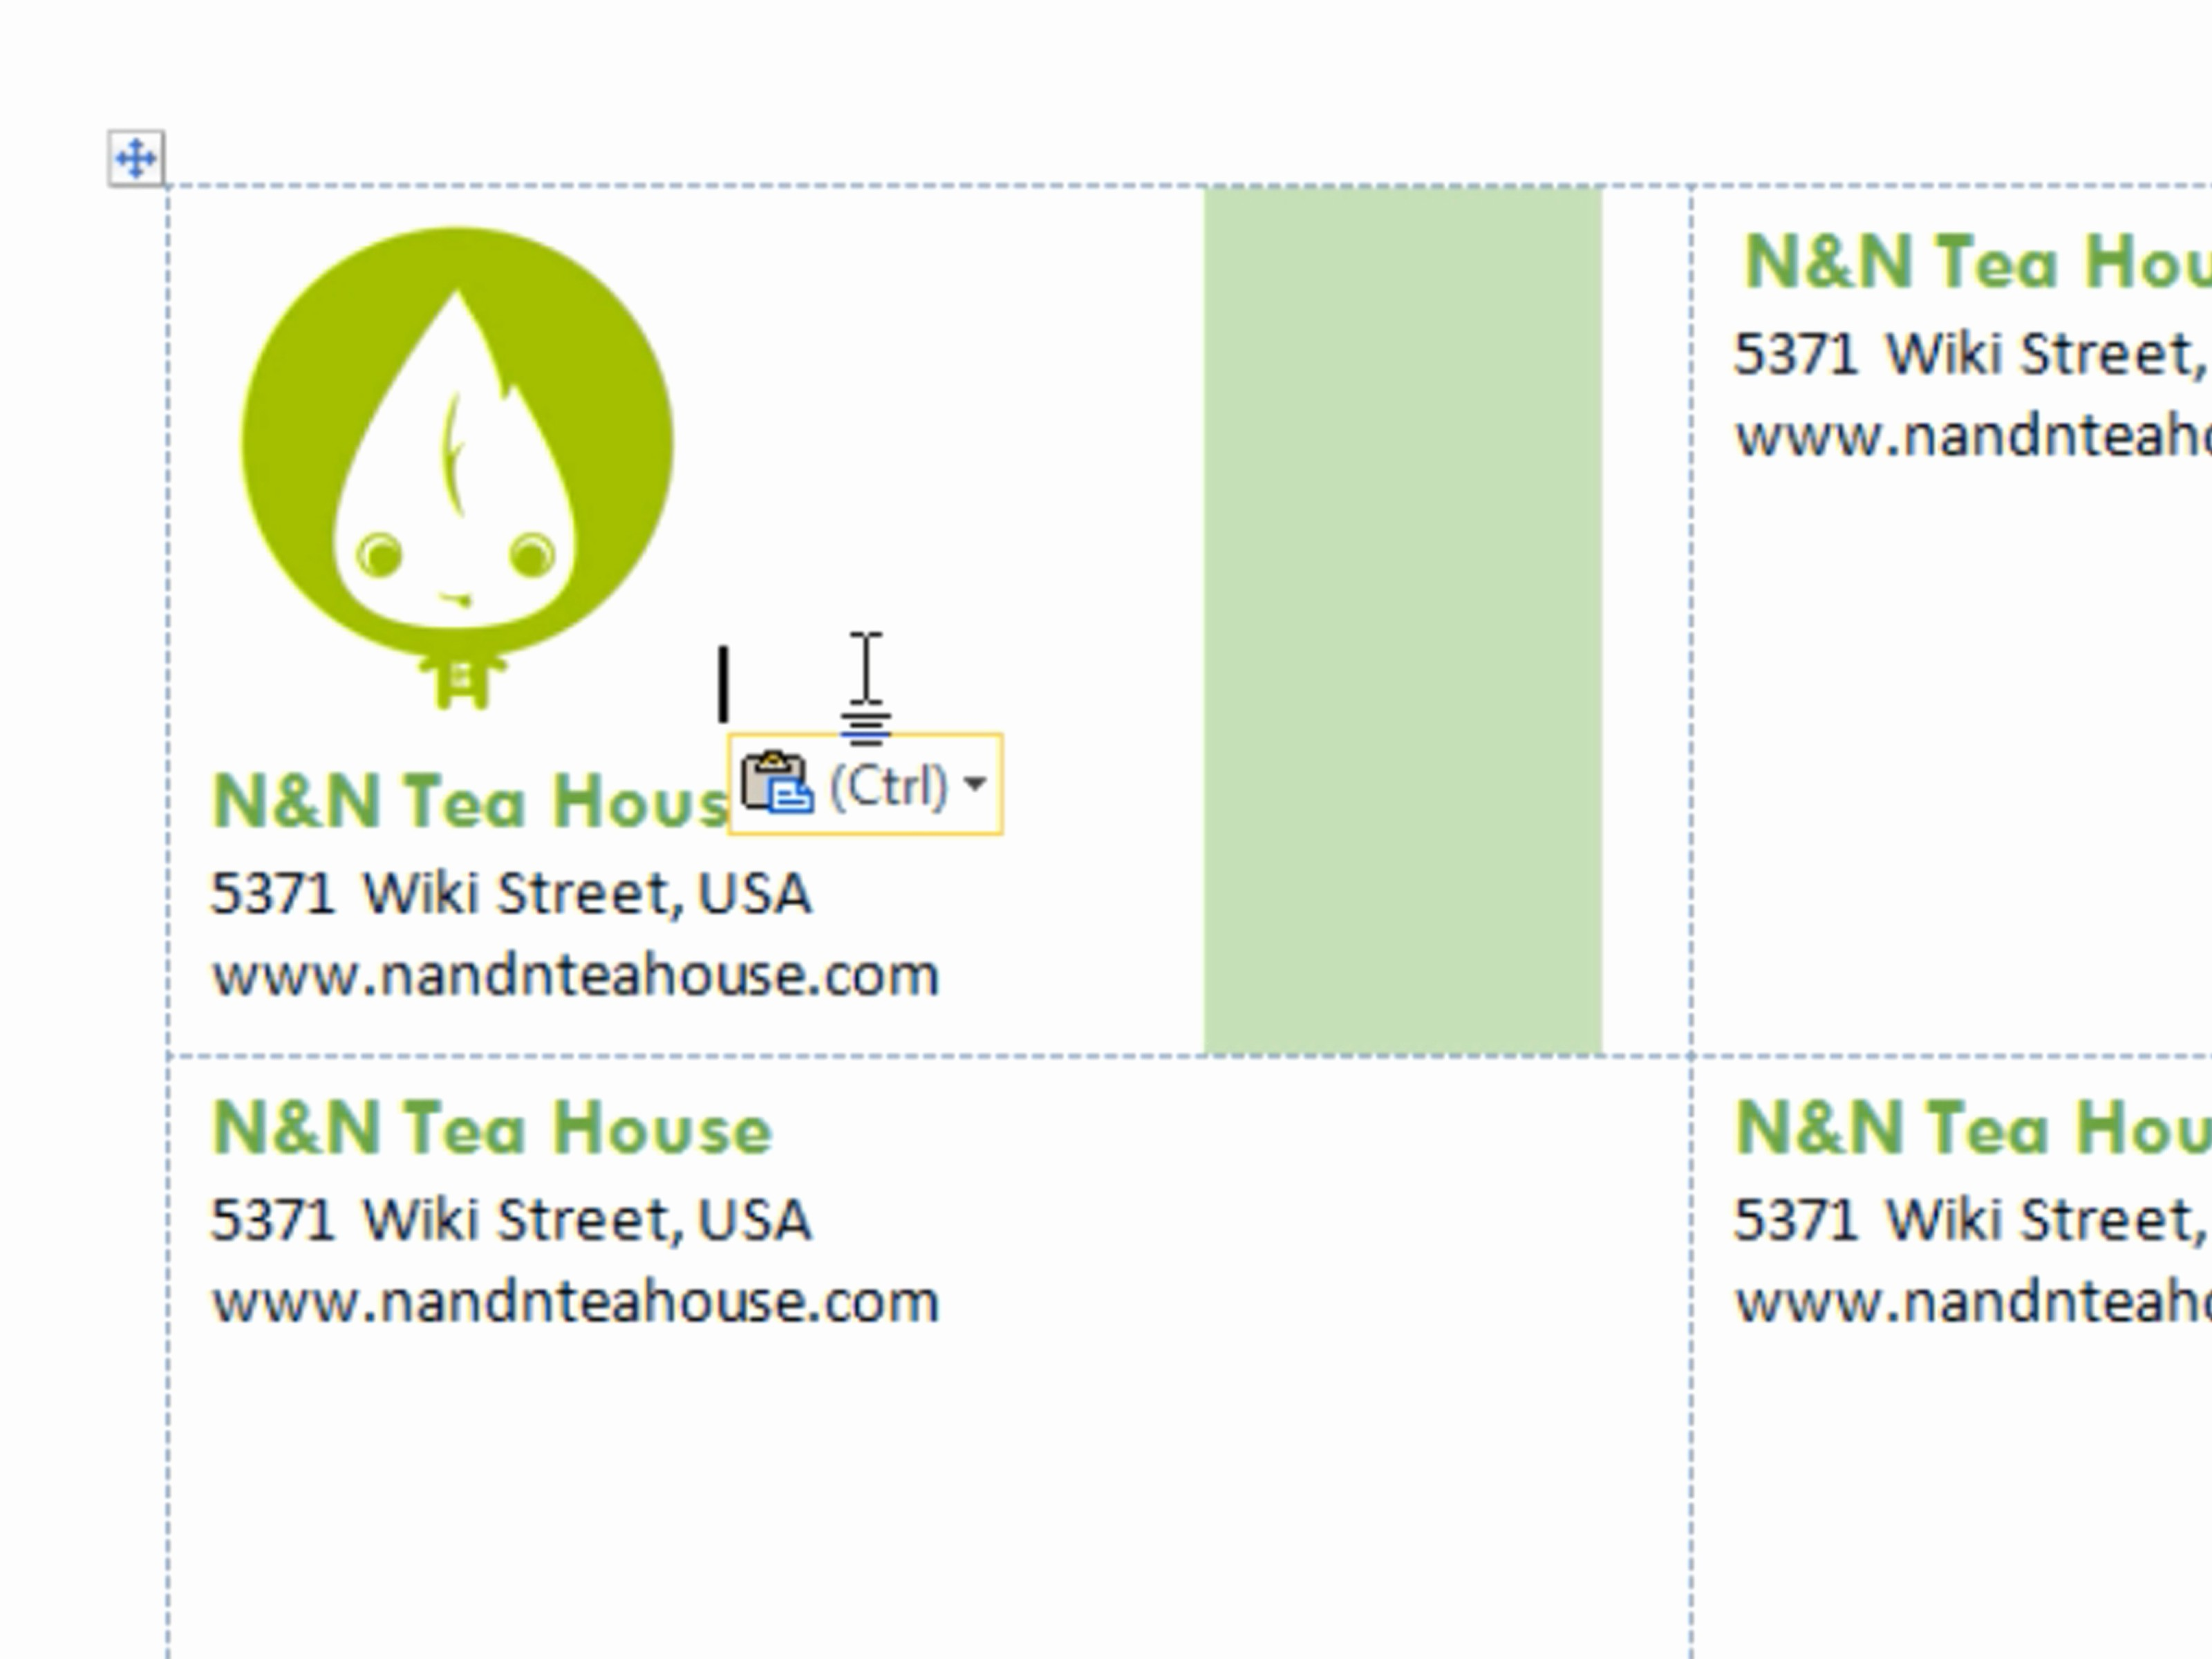 Microsoft Business Card Template Free Lovely Business Cards Templates Free for Word